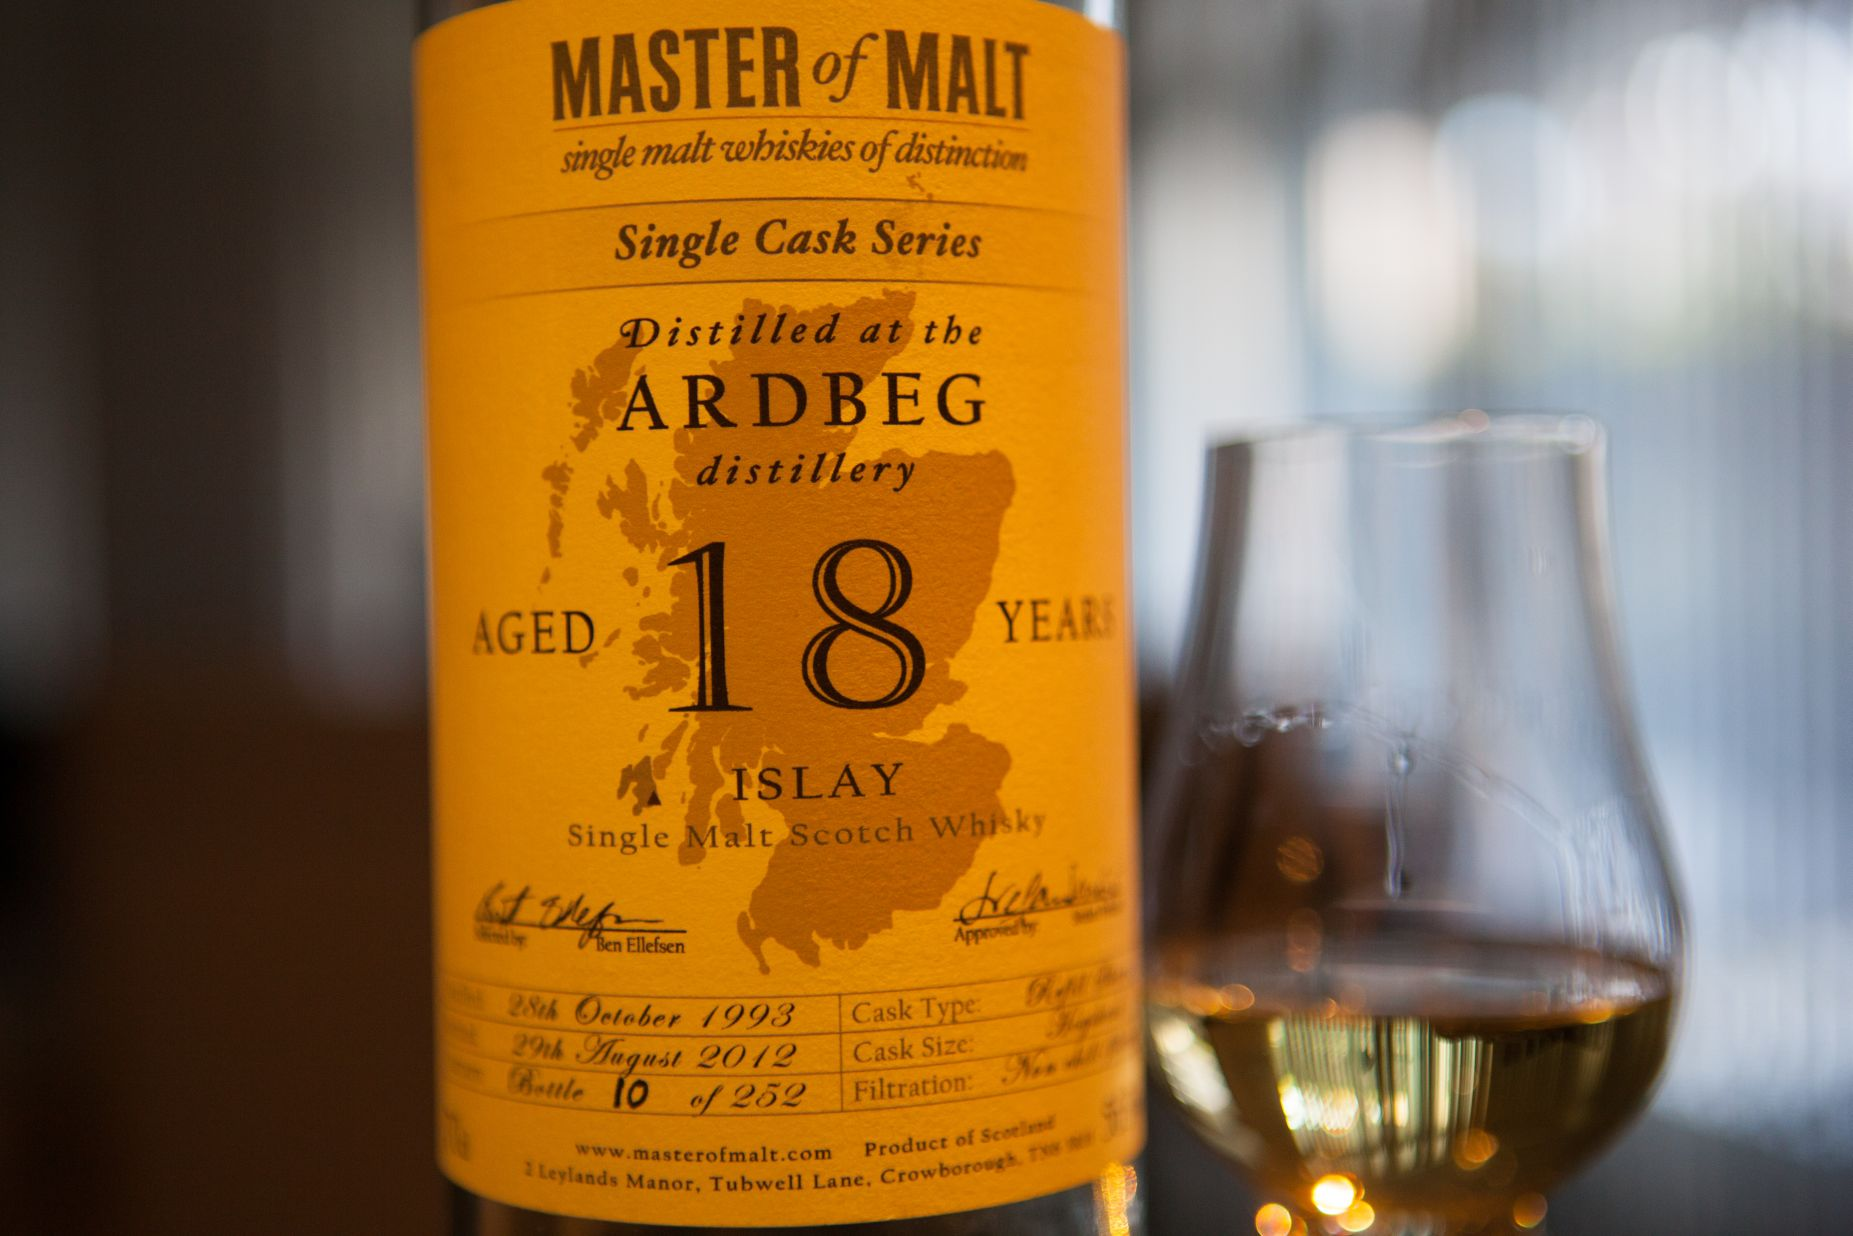 Master of Malt Ardbeg 18yr Single Cask Series Whisky Review